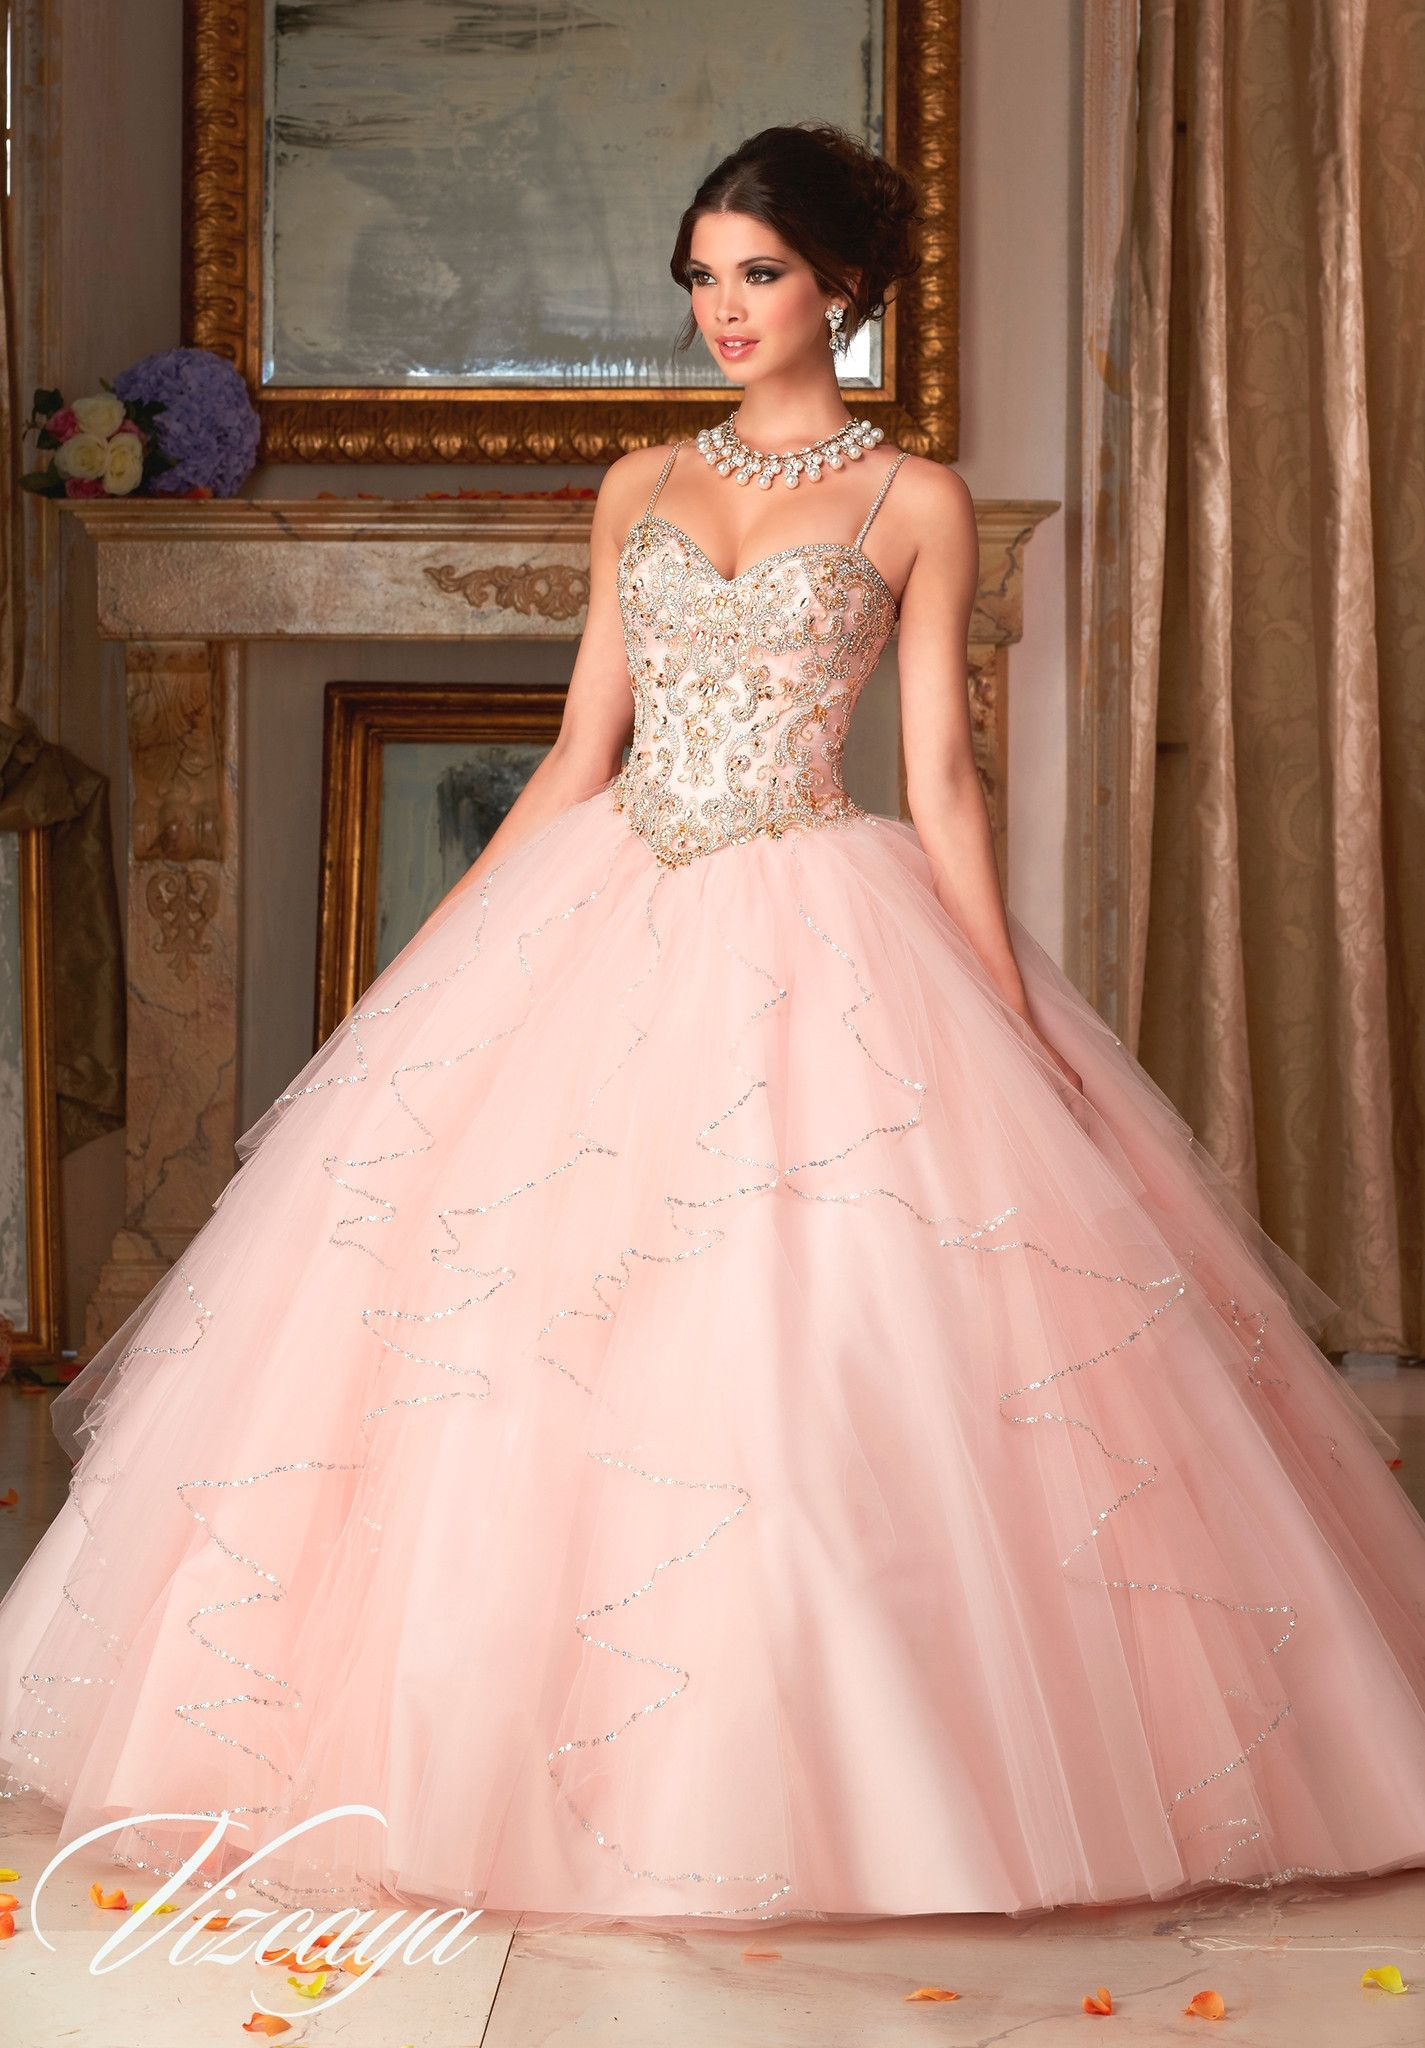 e66fa4b31fe Sweetheart Layered Quinceanera Dress by Mori Lee Vizcaya 89101 in ...